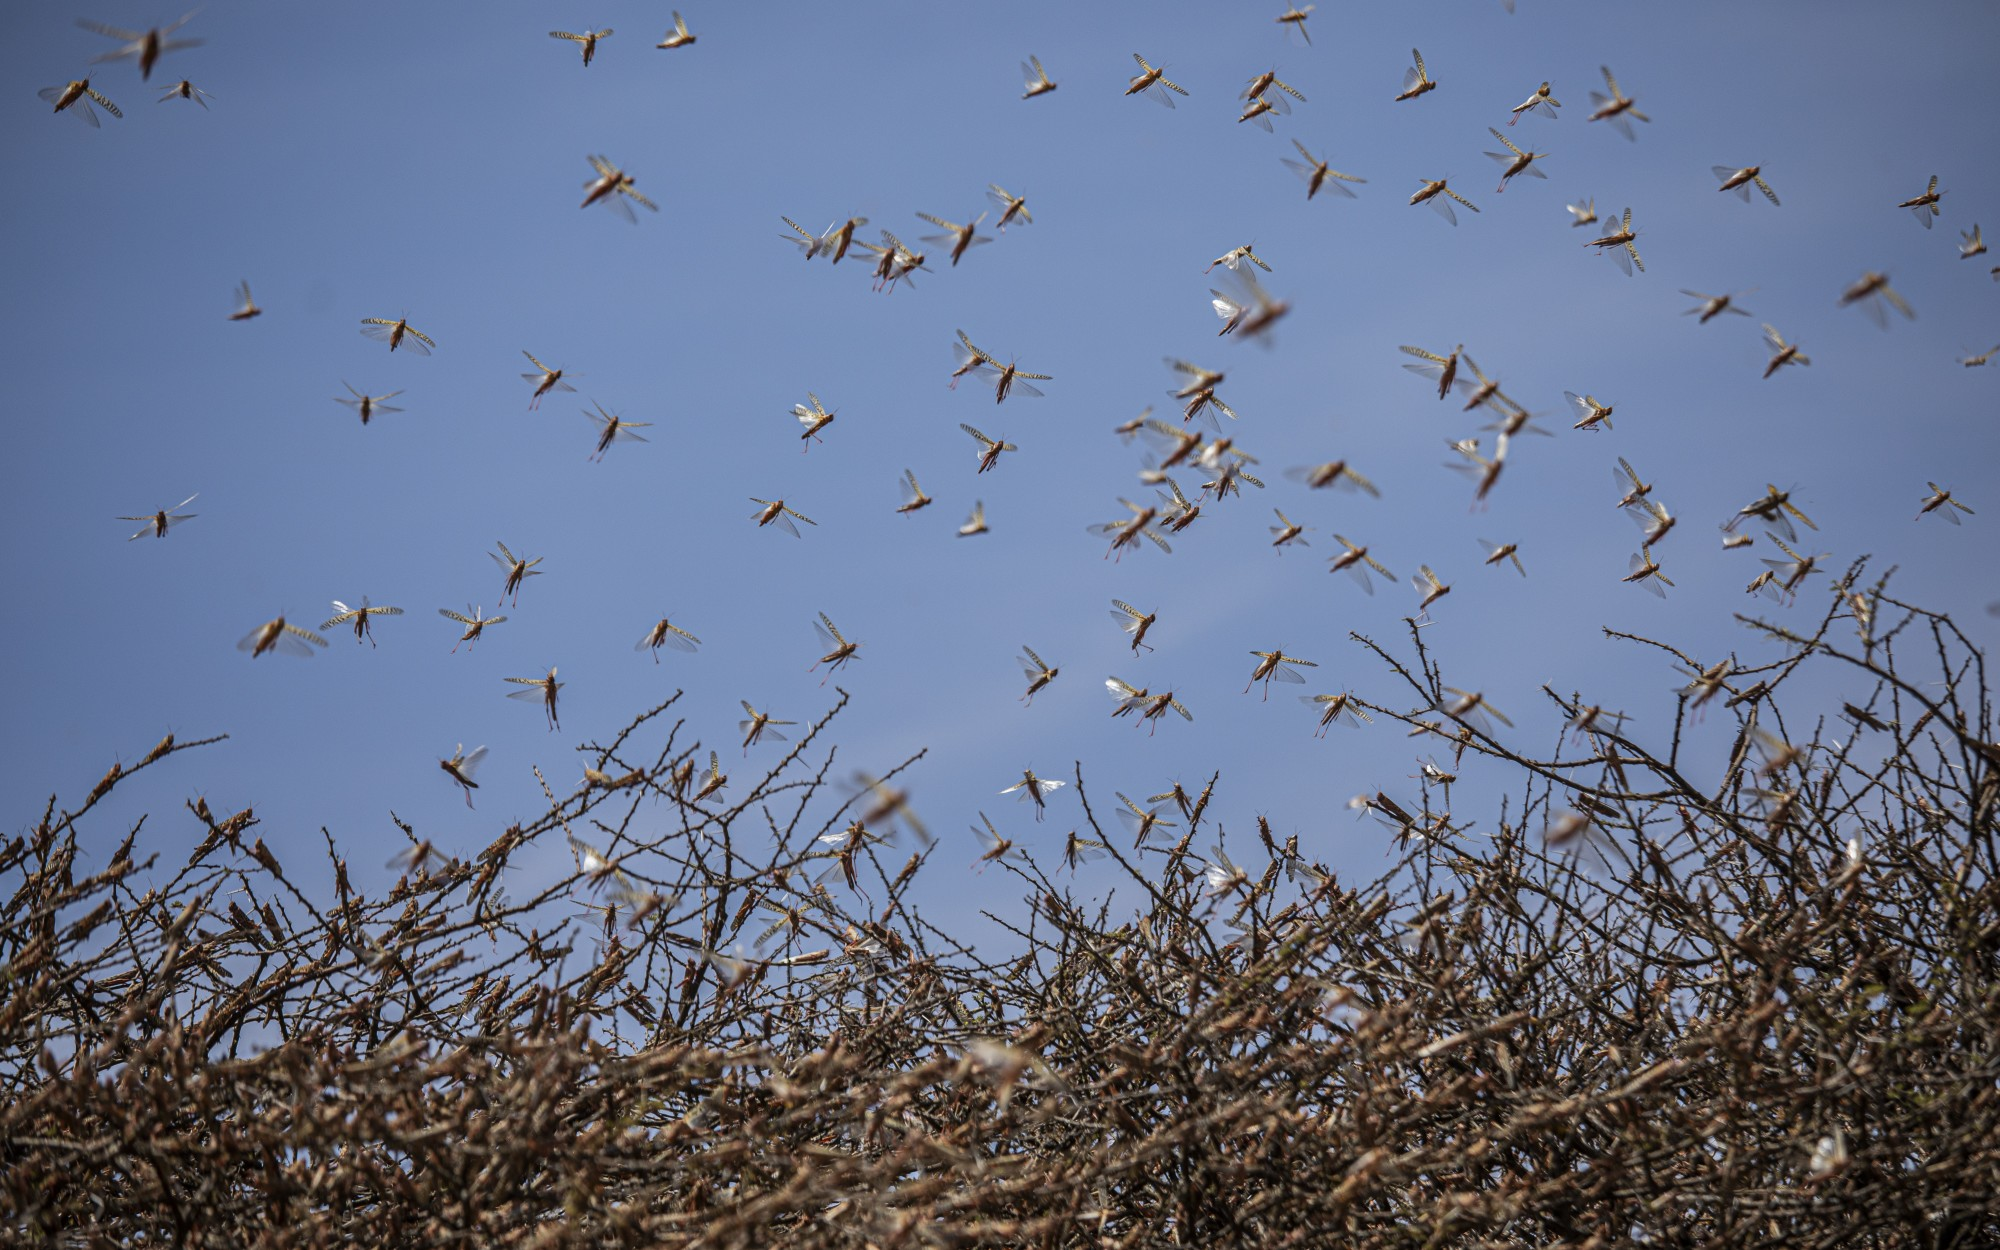 Like a biblical plague, locusts swarm East Africa, laying waste to crops and livelihoods – Los Angeles Times (image)